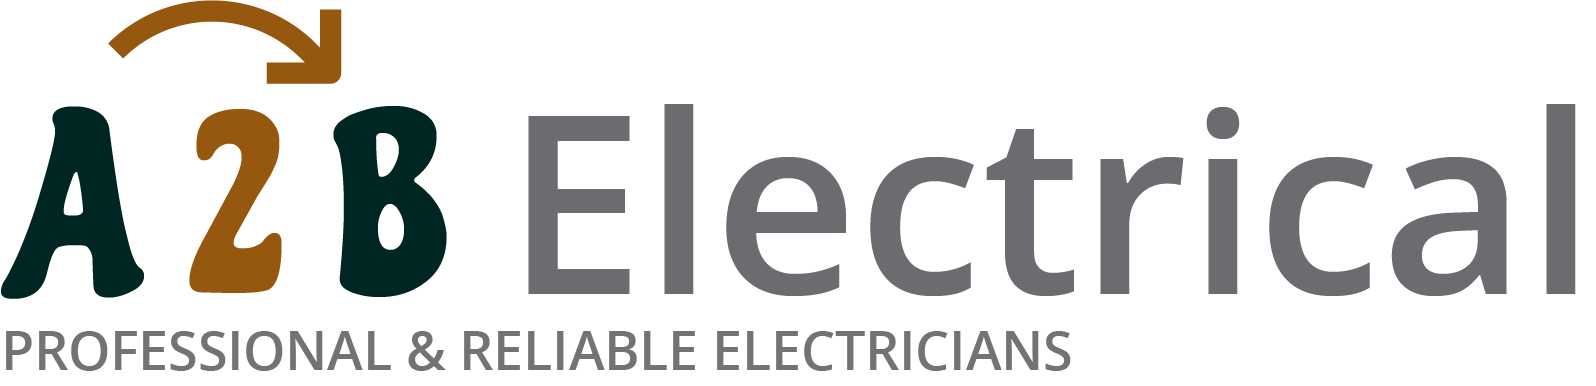 If you have electrical wiring problems in Purfleet, we can provide an electrician to have a look for you.